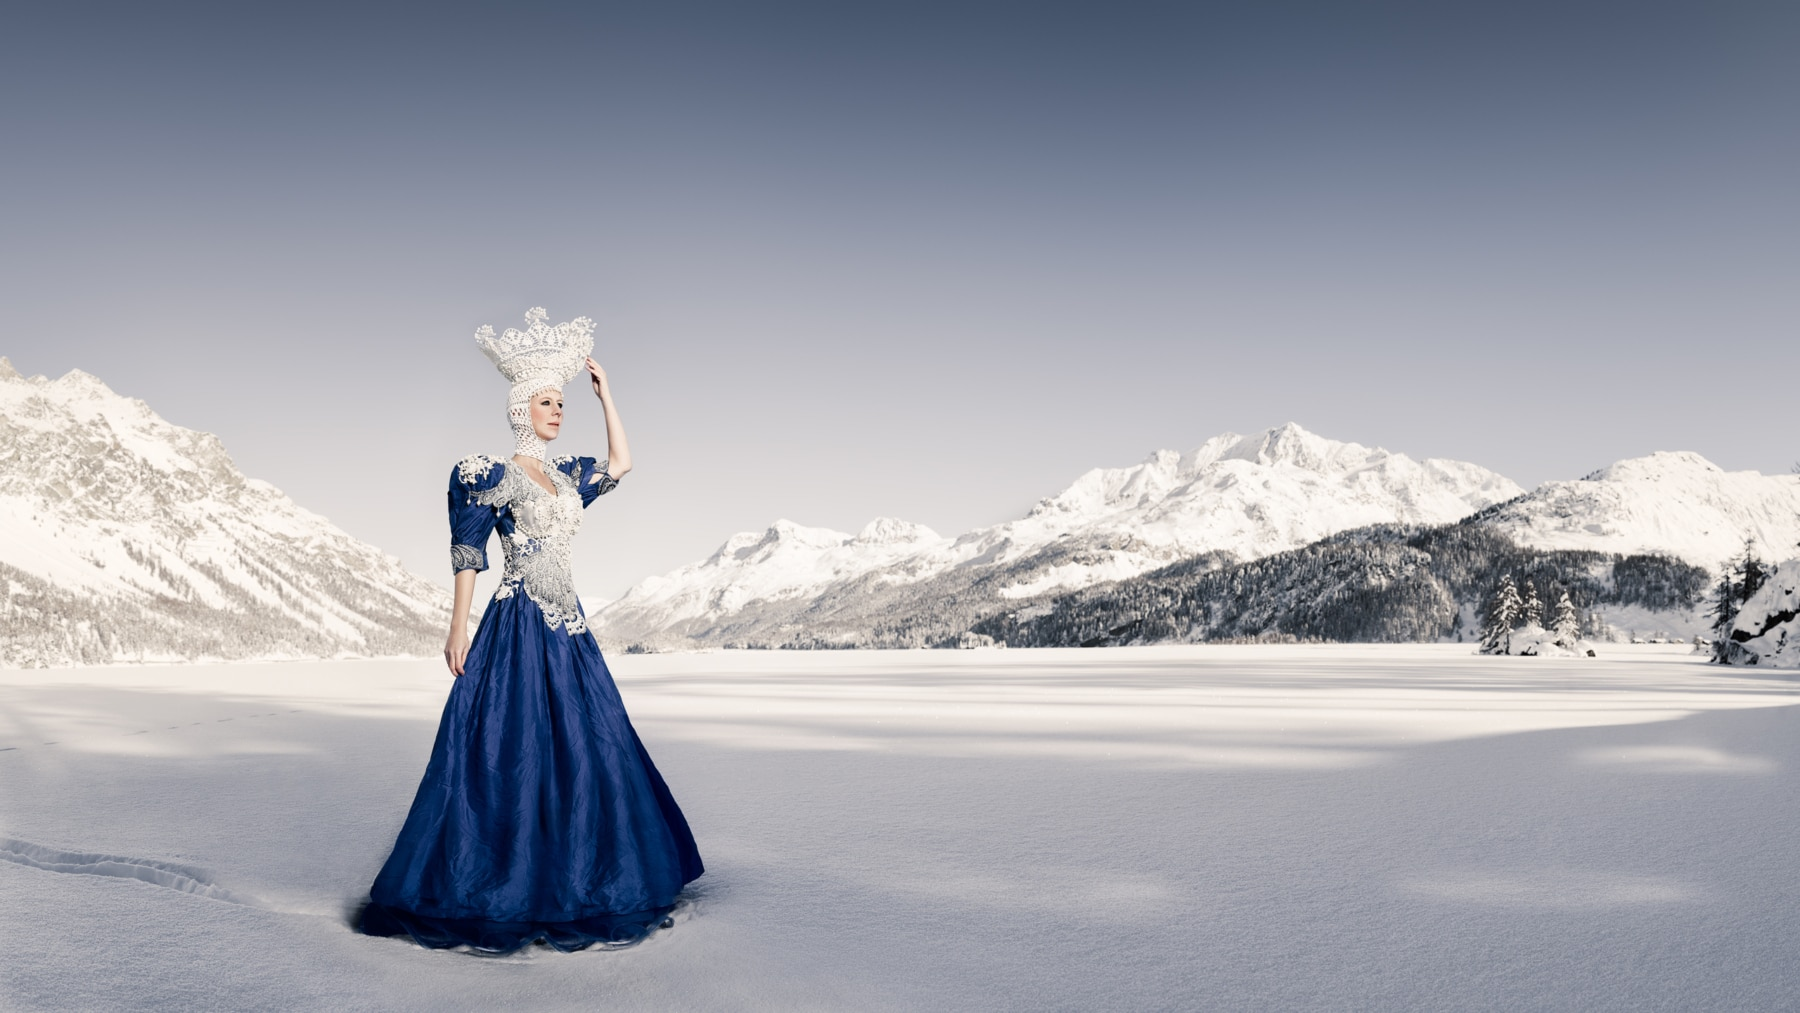 Ice Queen - on a frozen lake © by Gerry Pacher